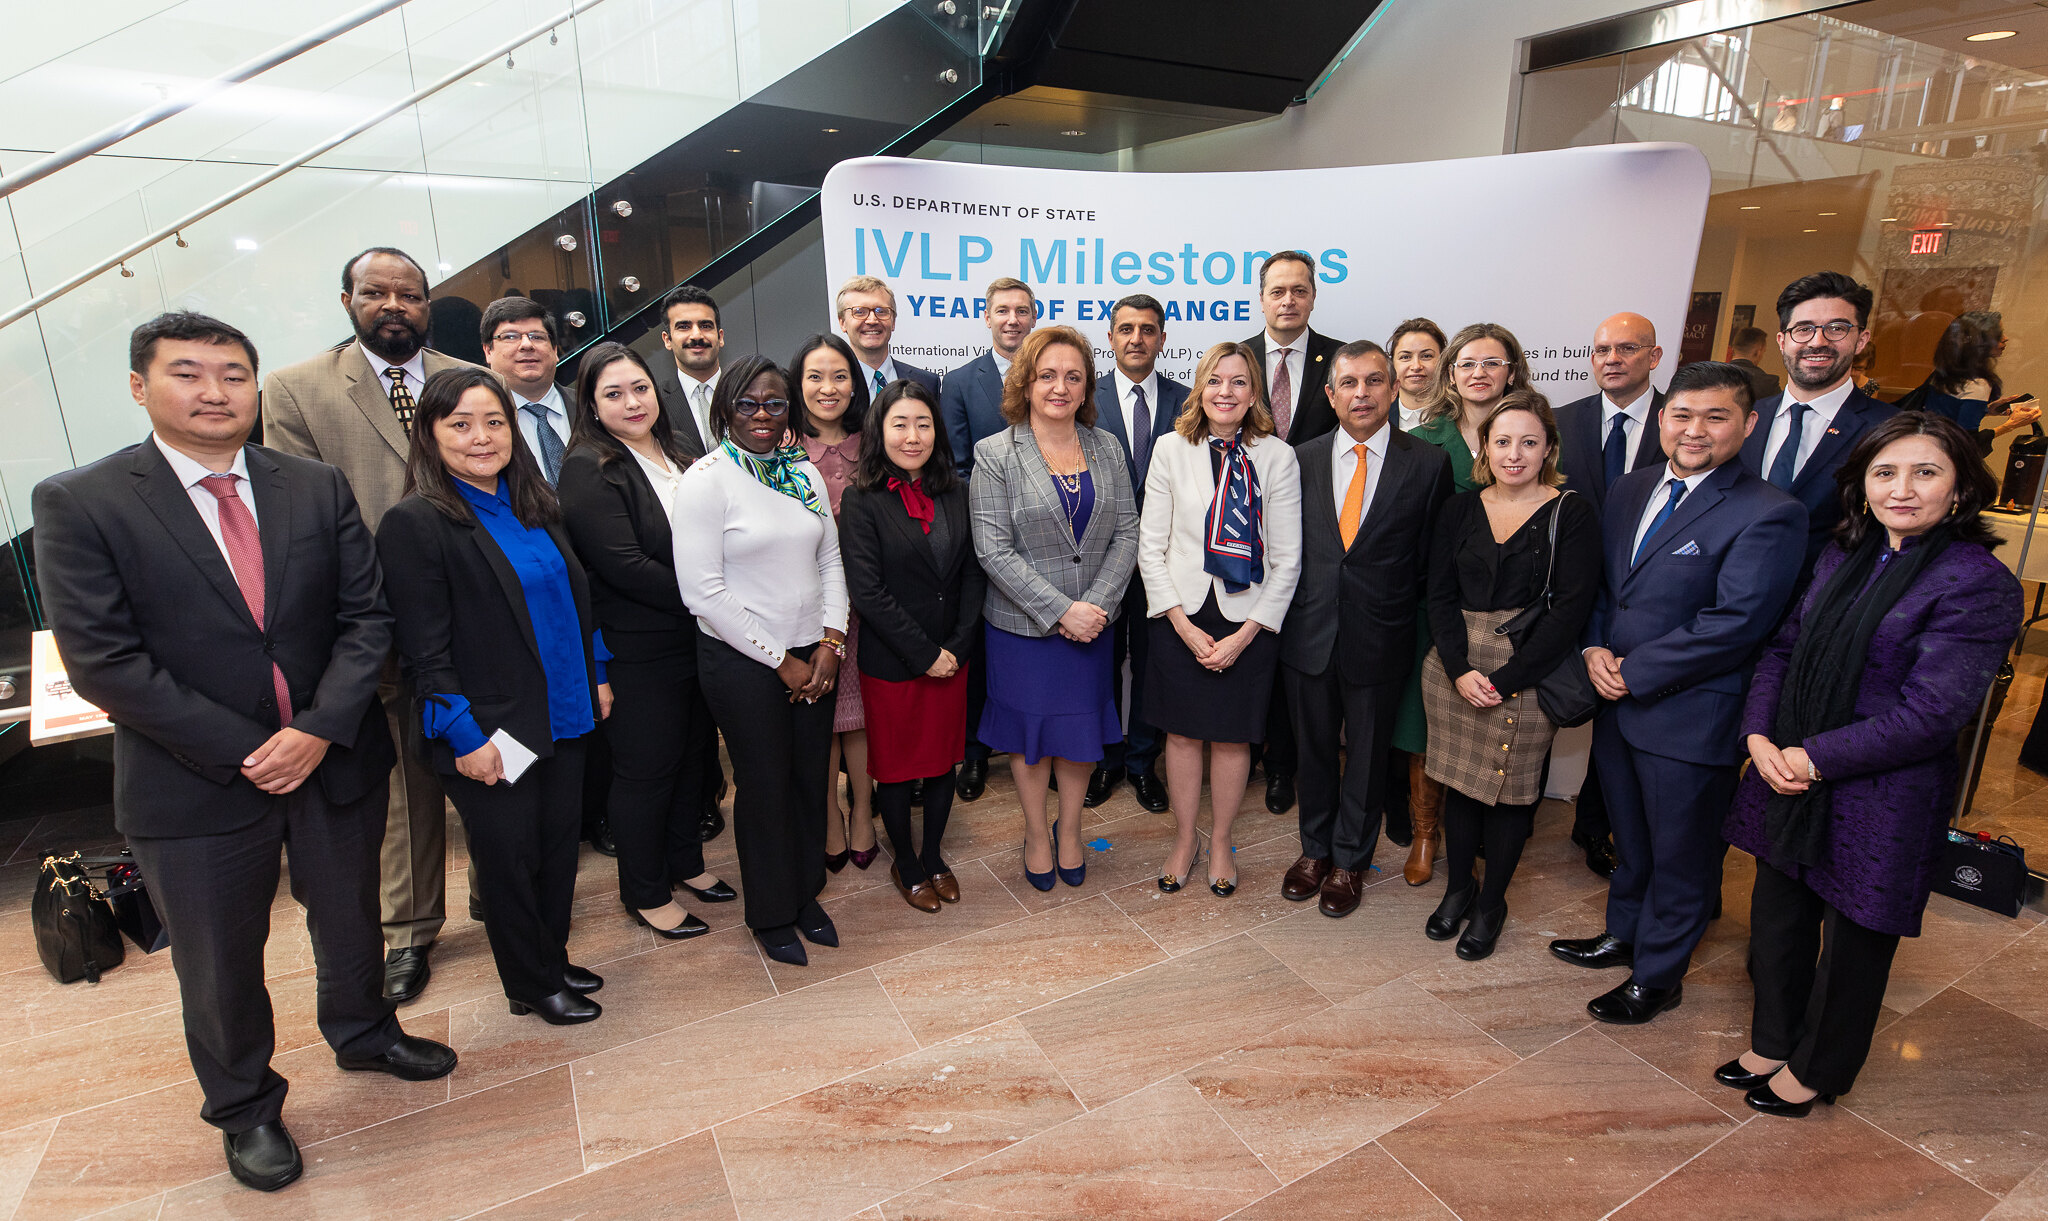 IVLP 80 Event Group photo